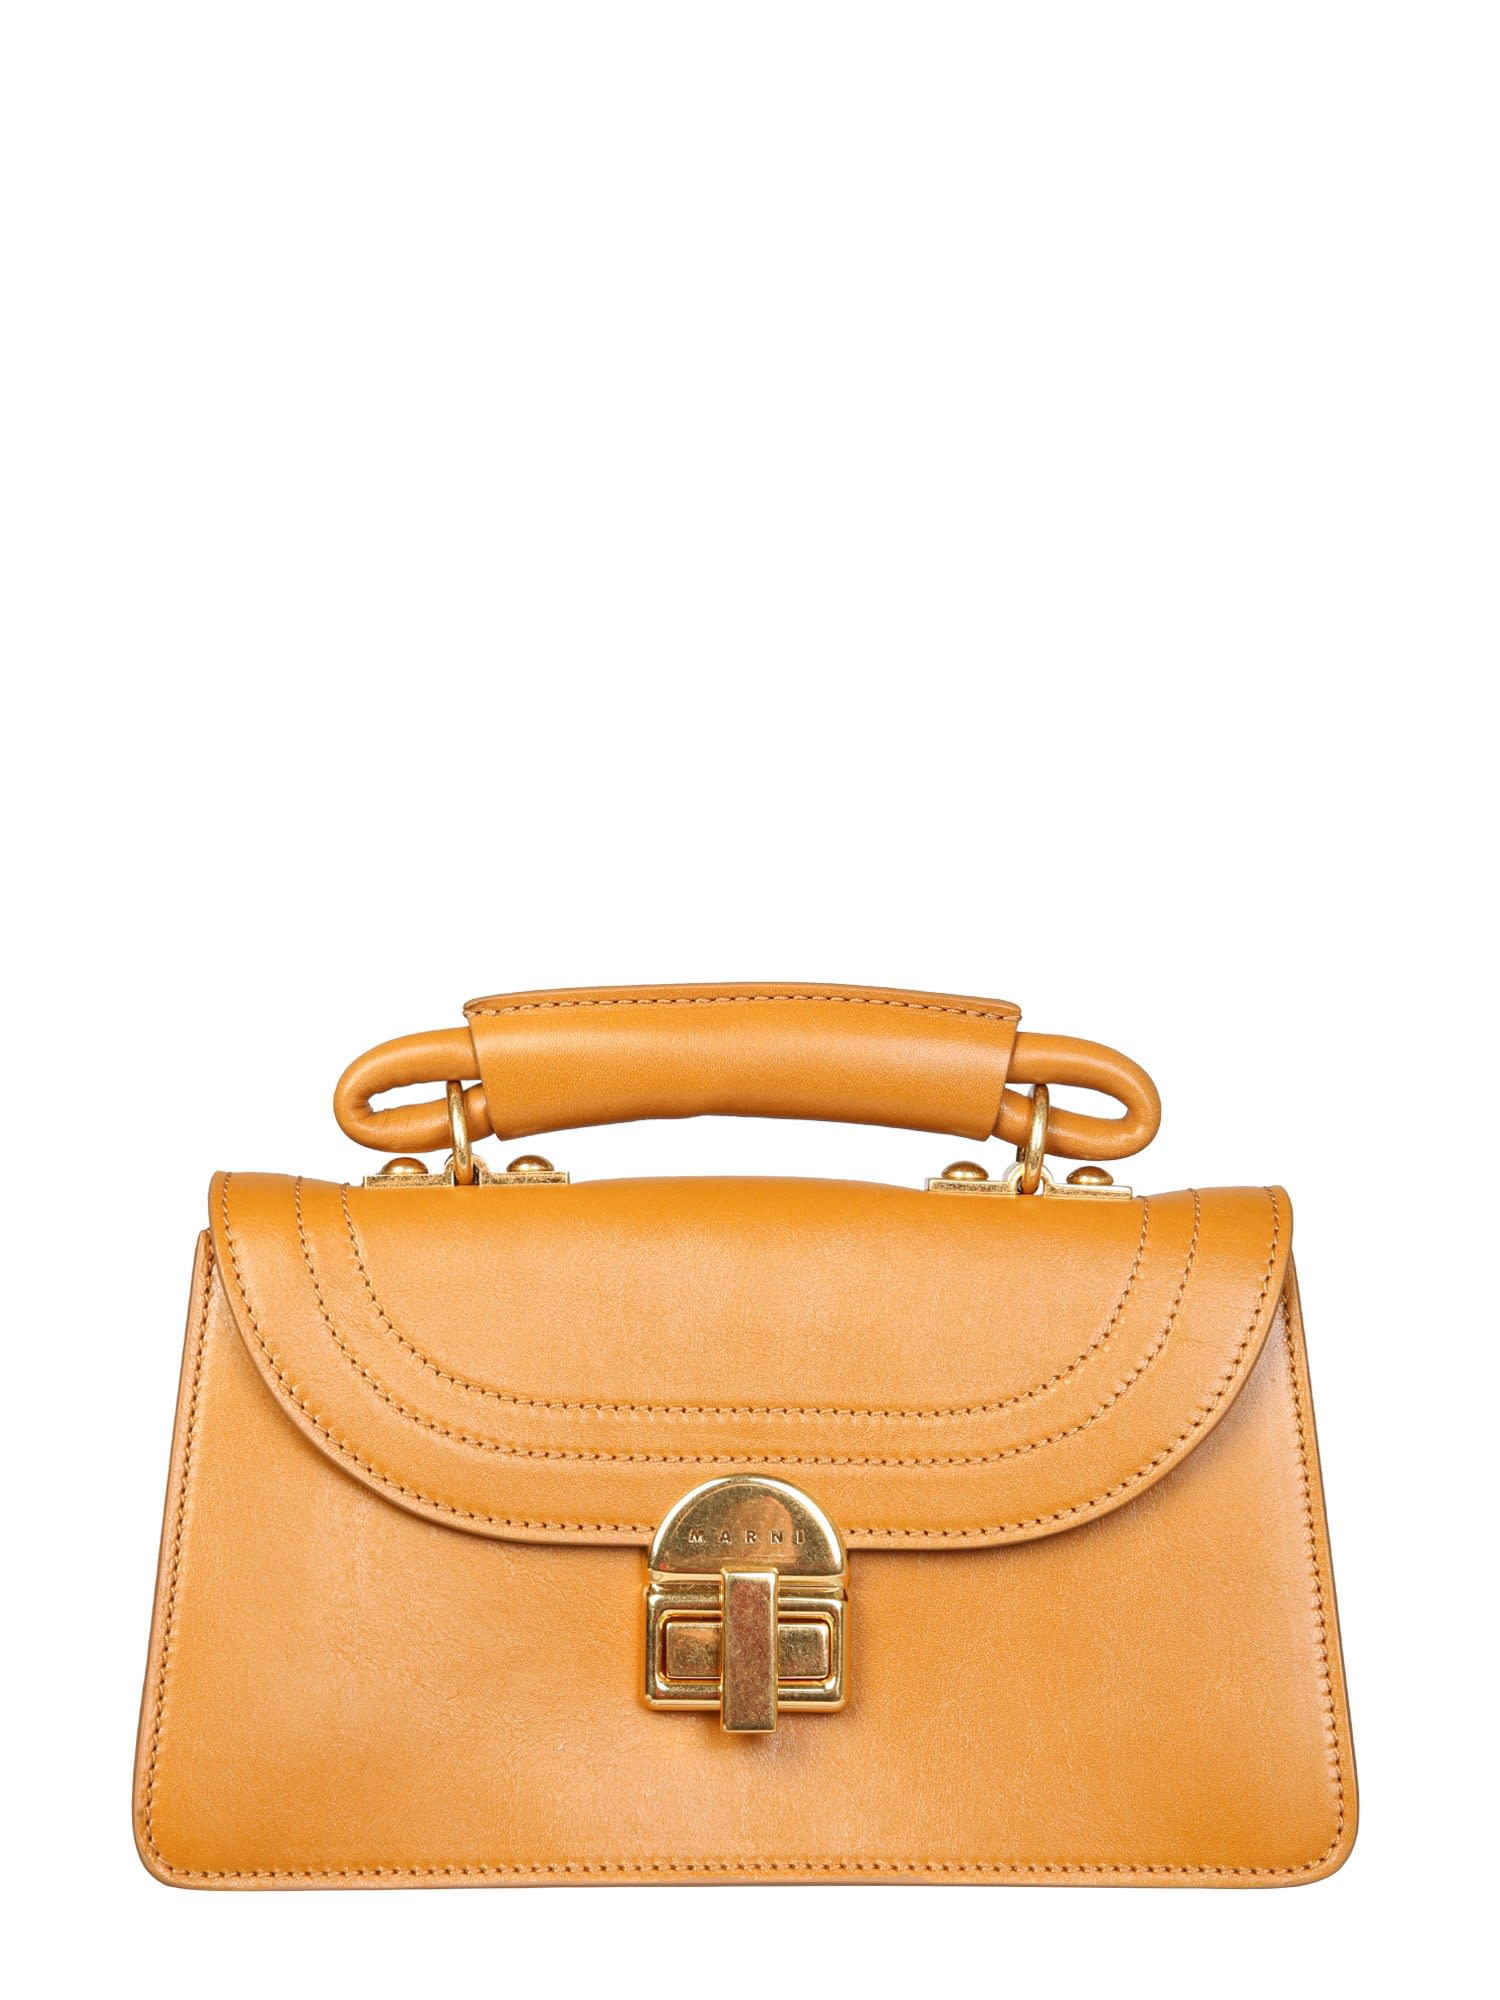 Marni Small Juliette Shoulder Bag In Arancione